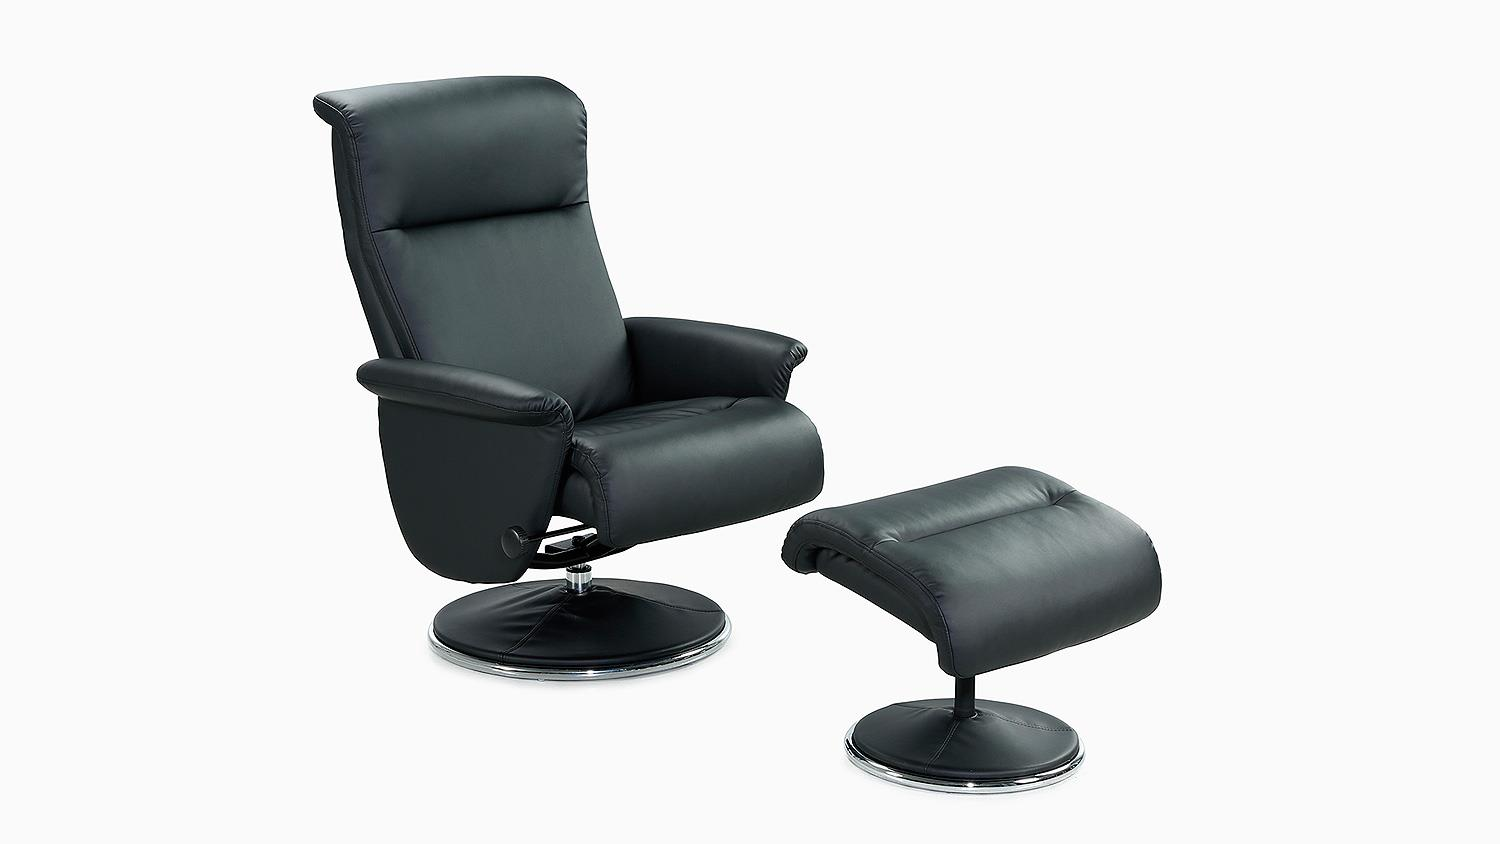 Relaxsessel Ricarda Relax Chair In Schwarz Inkl Hocker